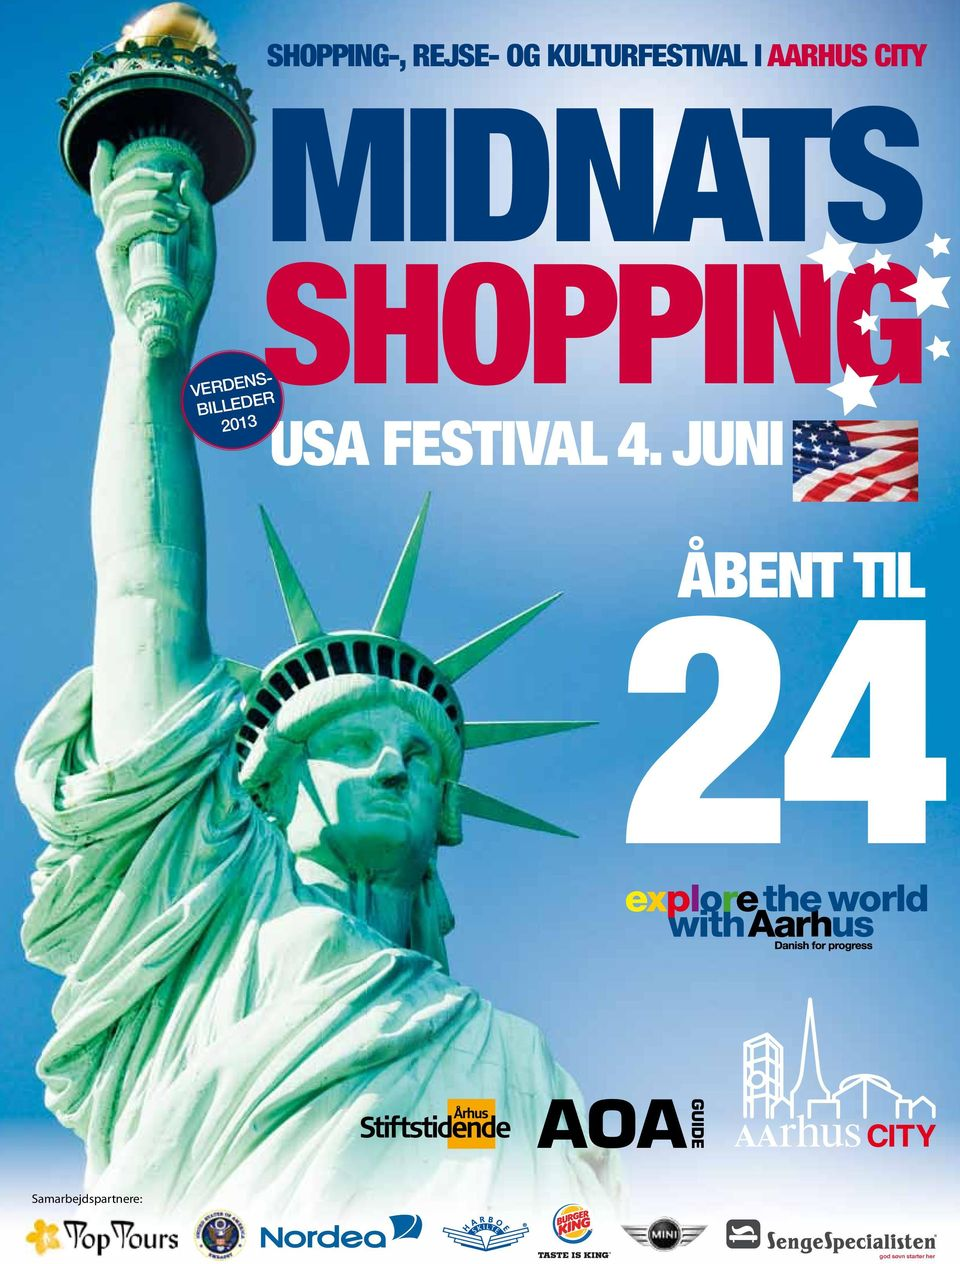 SHOPPING USA FESTIVAL 4.